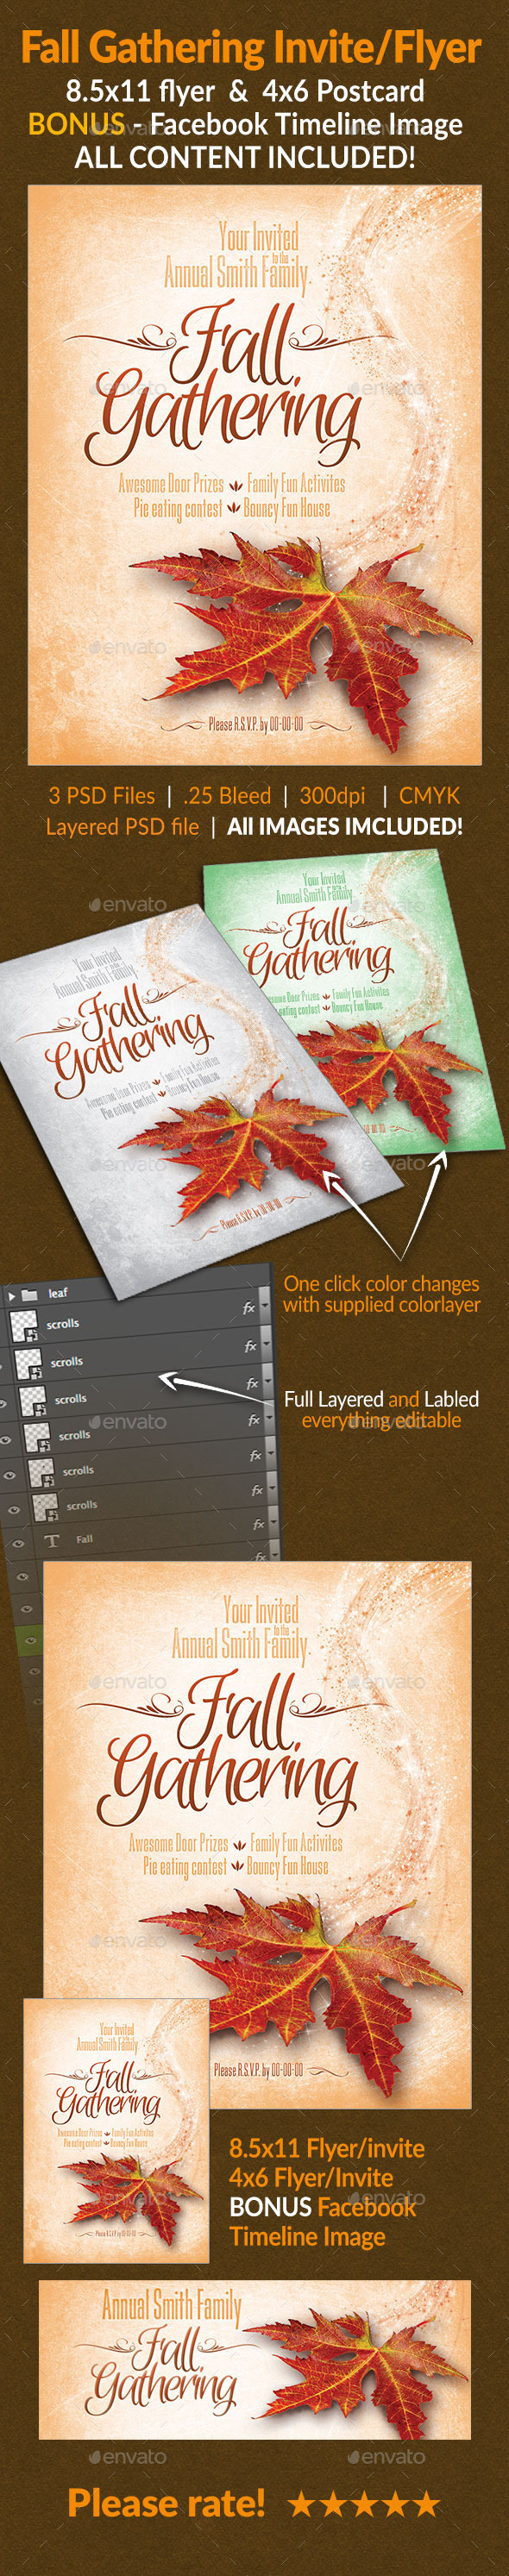 GraphicRiver Fall Gathering Invite Flyer Set 9006843